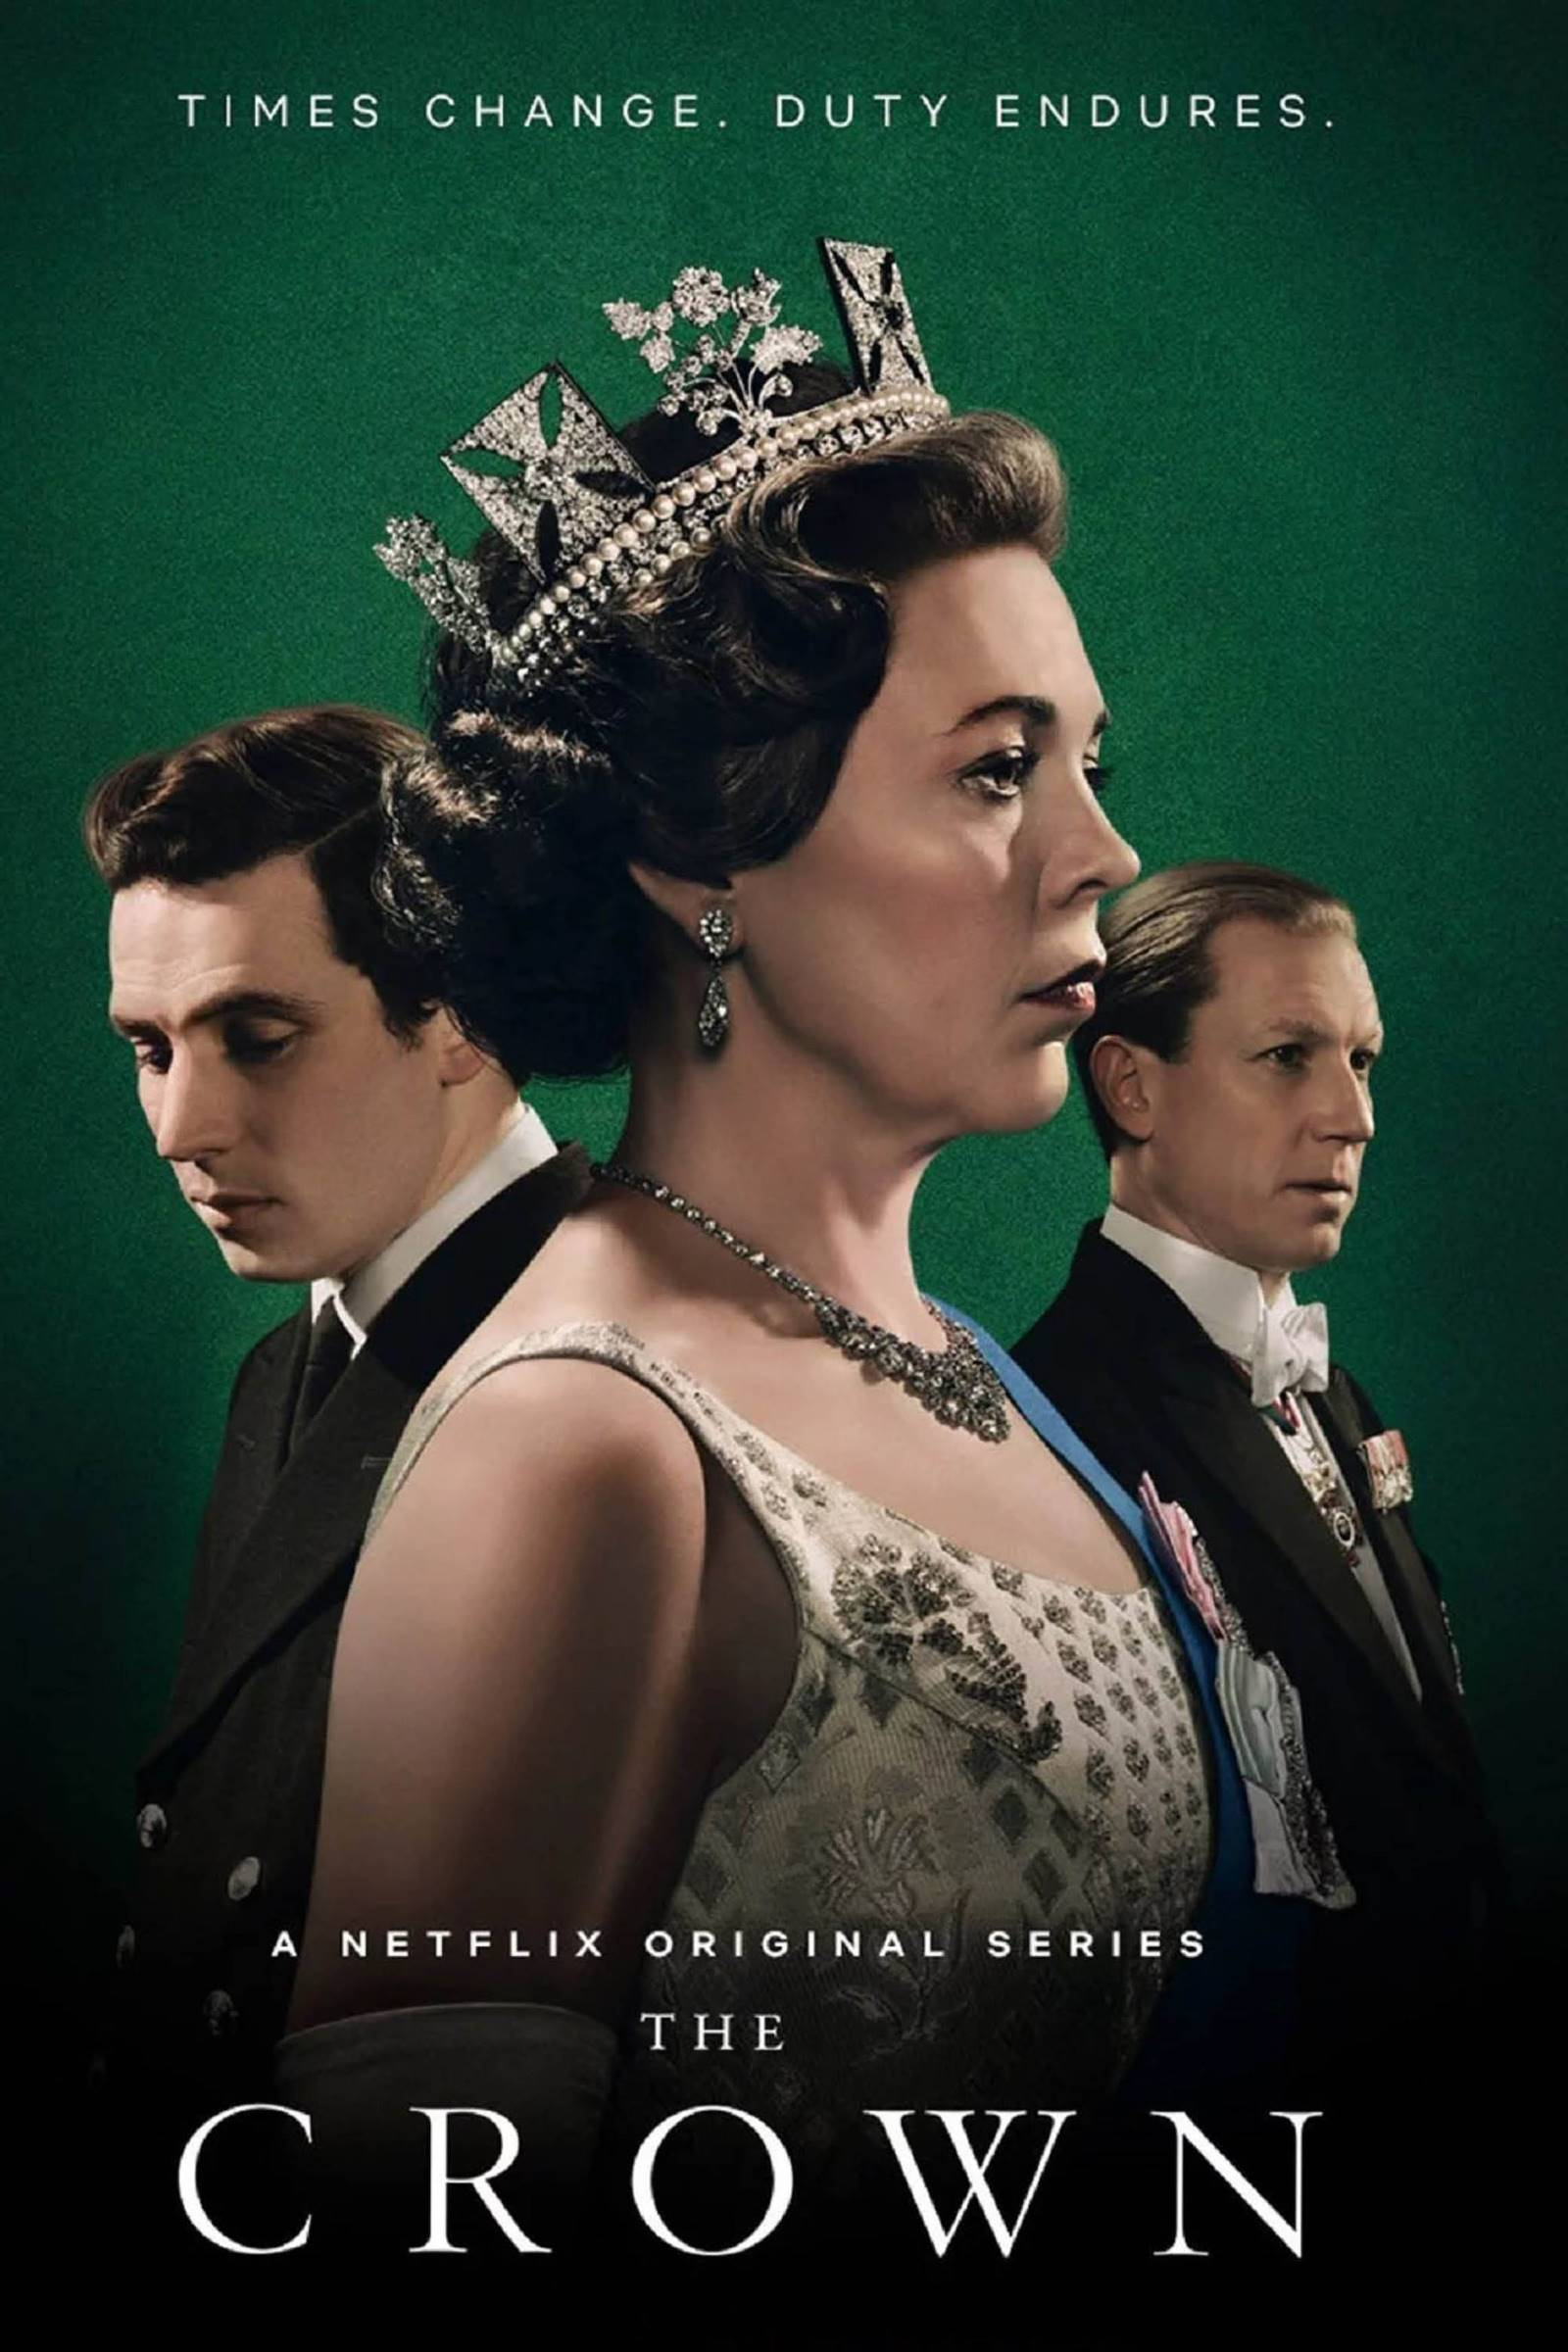 the crown mejores series netflix hbo movistar amazon6